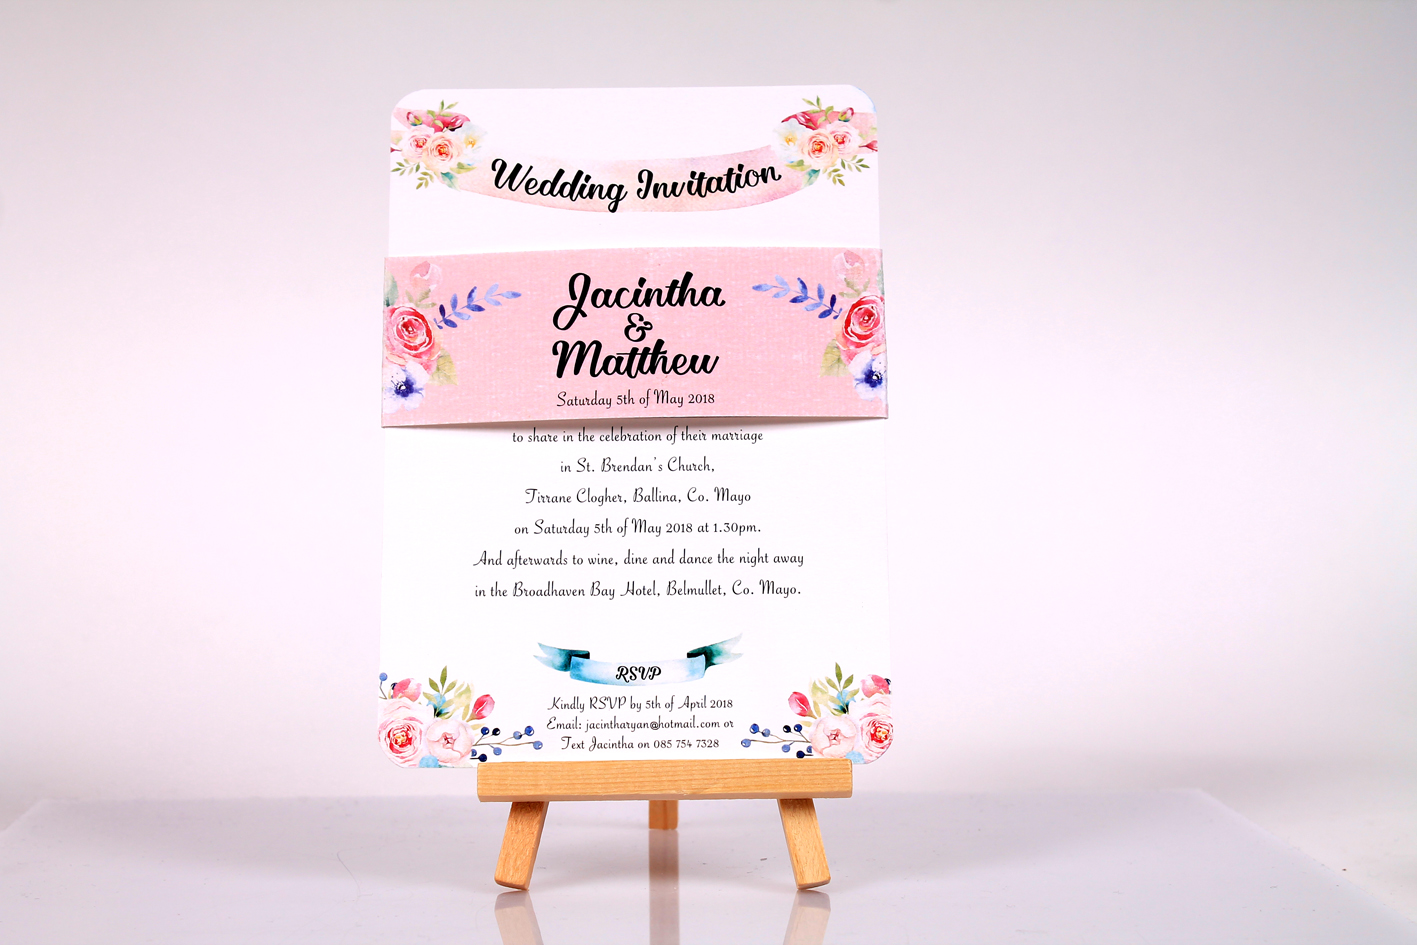 """Only on a few occasion over the last year, have I been asked to include their parent's names on the wedding invitation introduction."""" Colour Trends"""